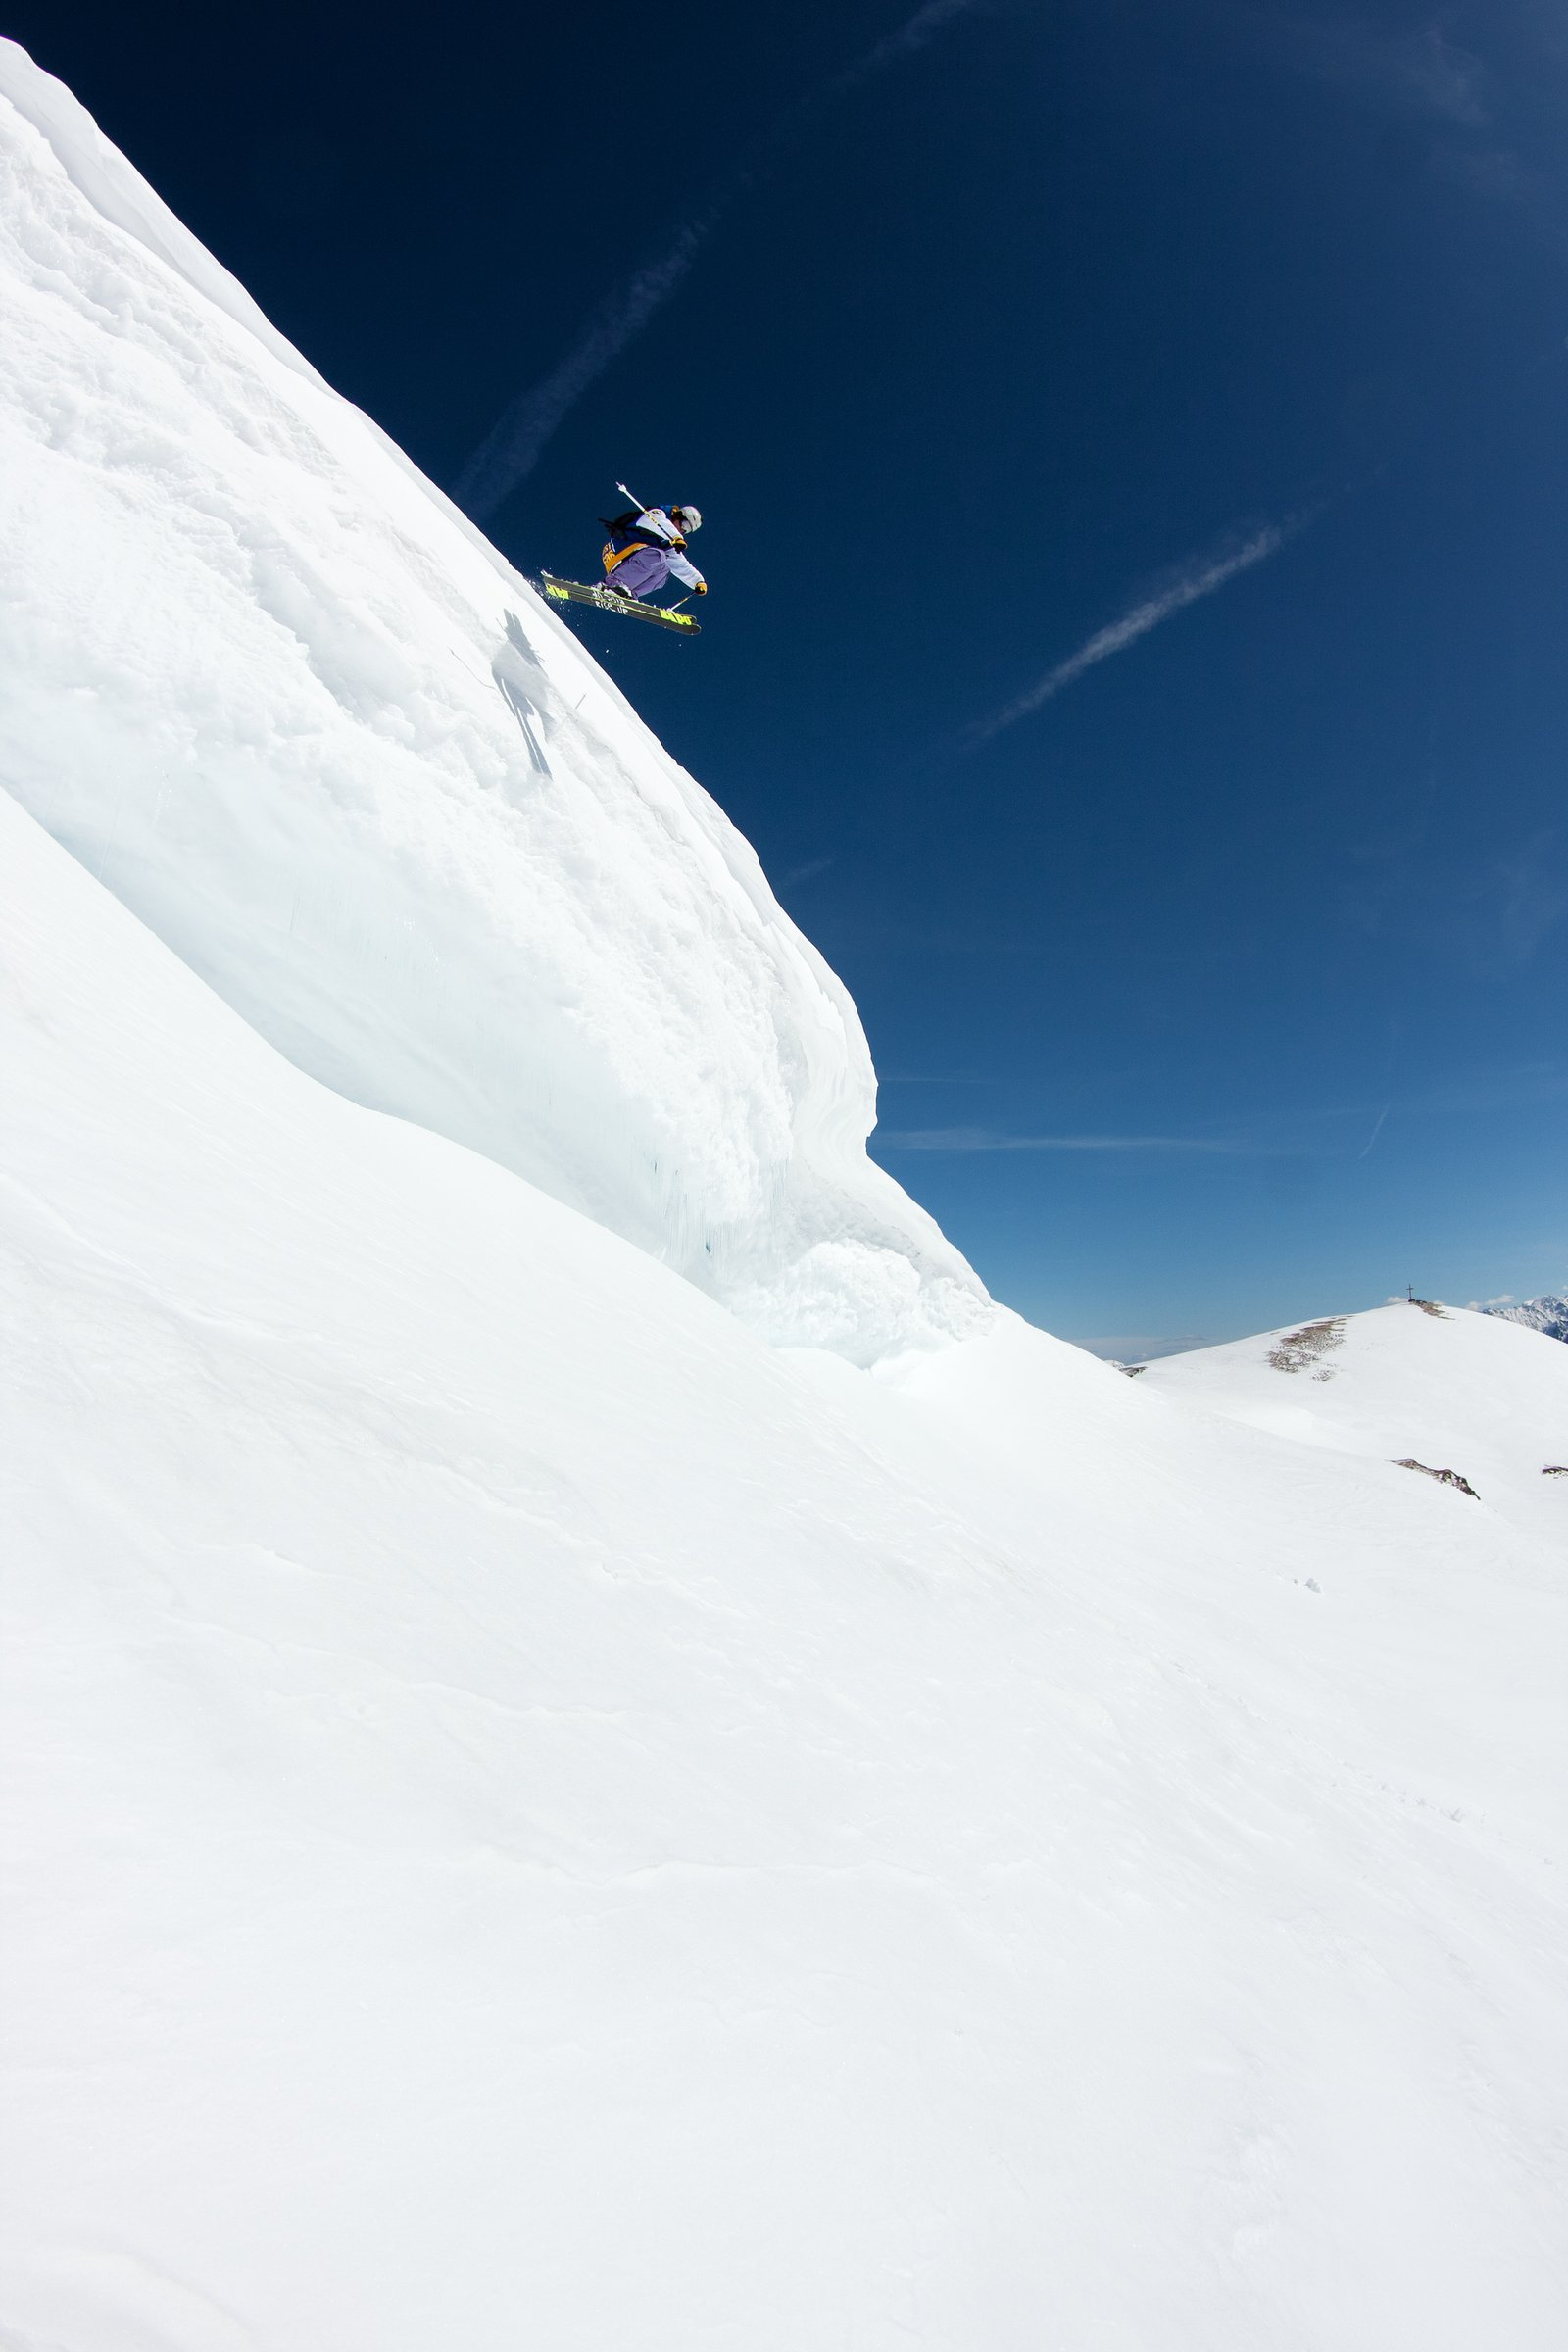 Dropping in!